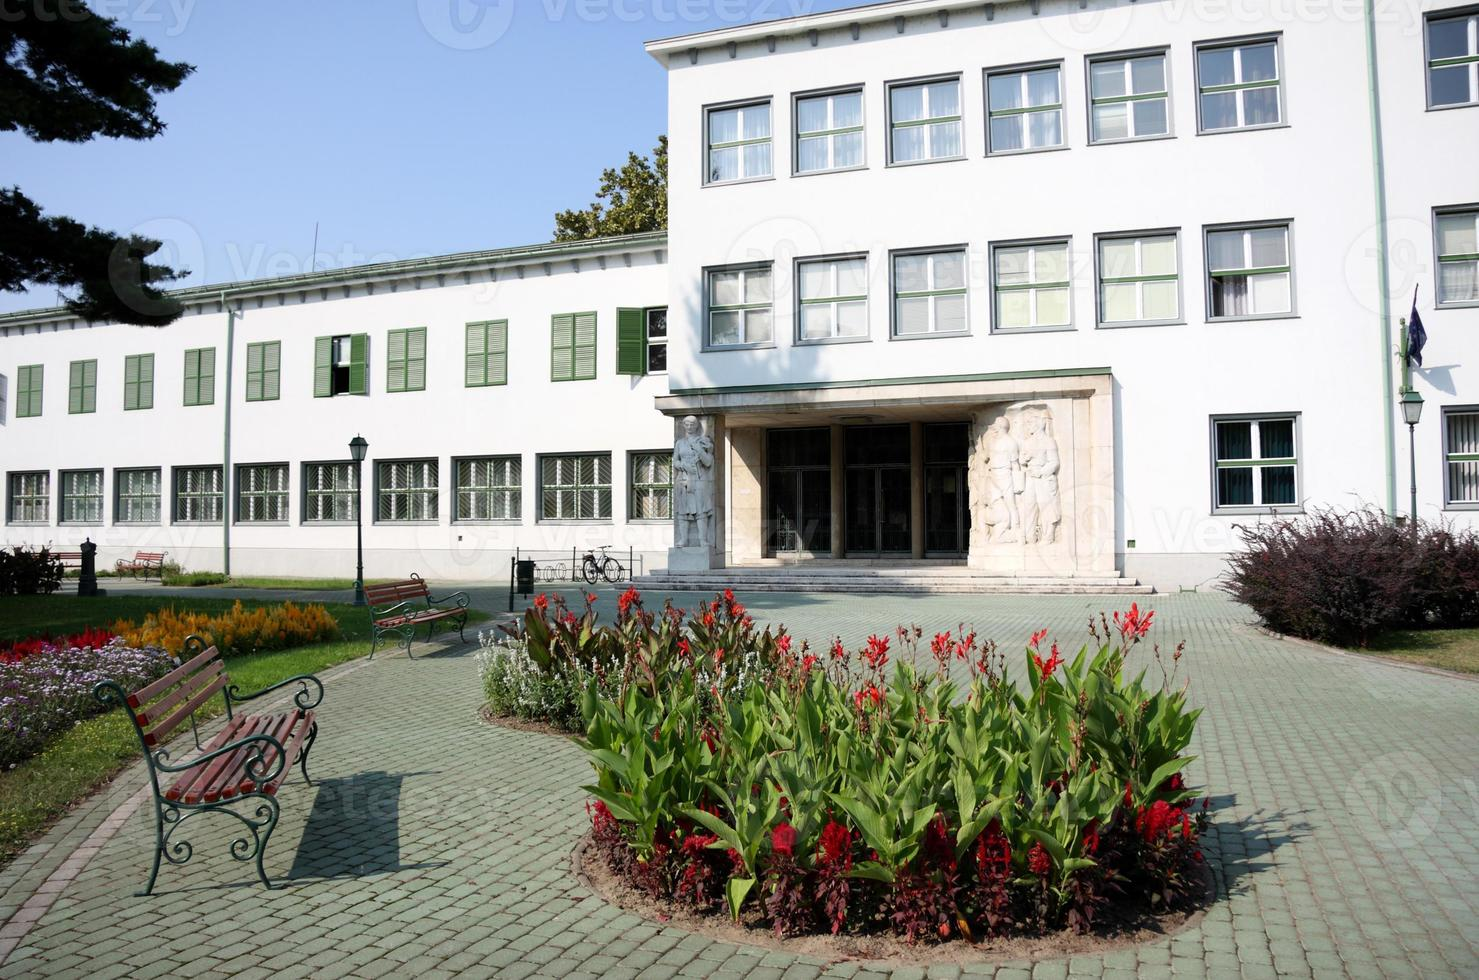 Agricultural University, Debrecen, Hungary photo